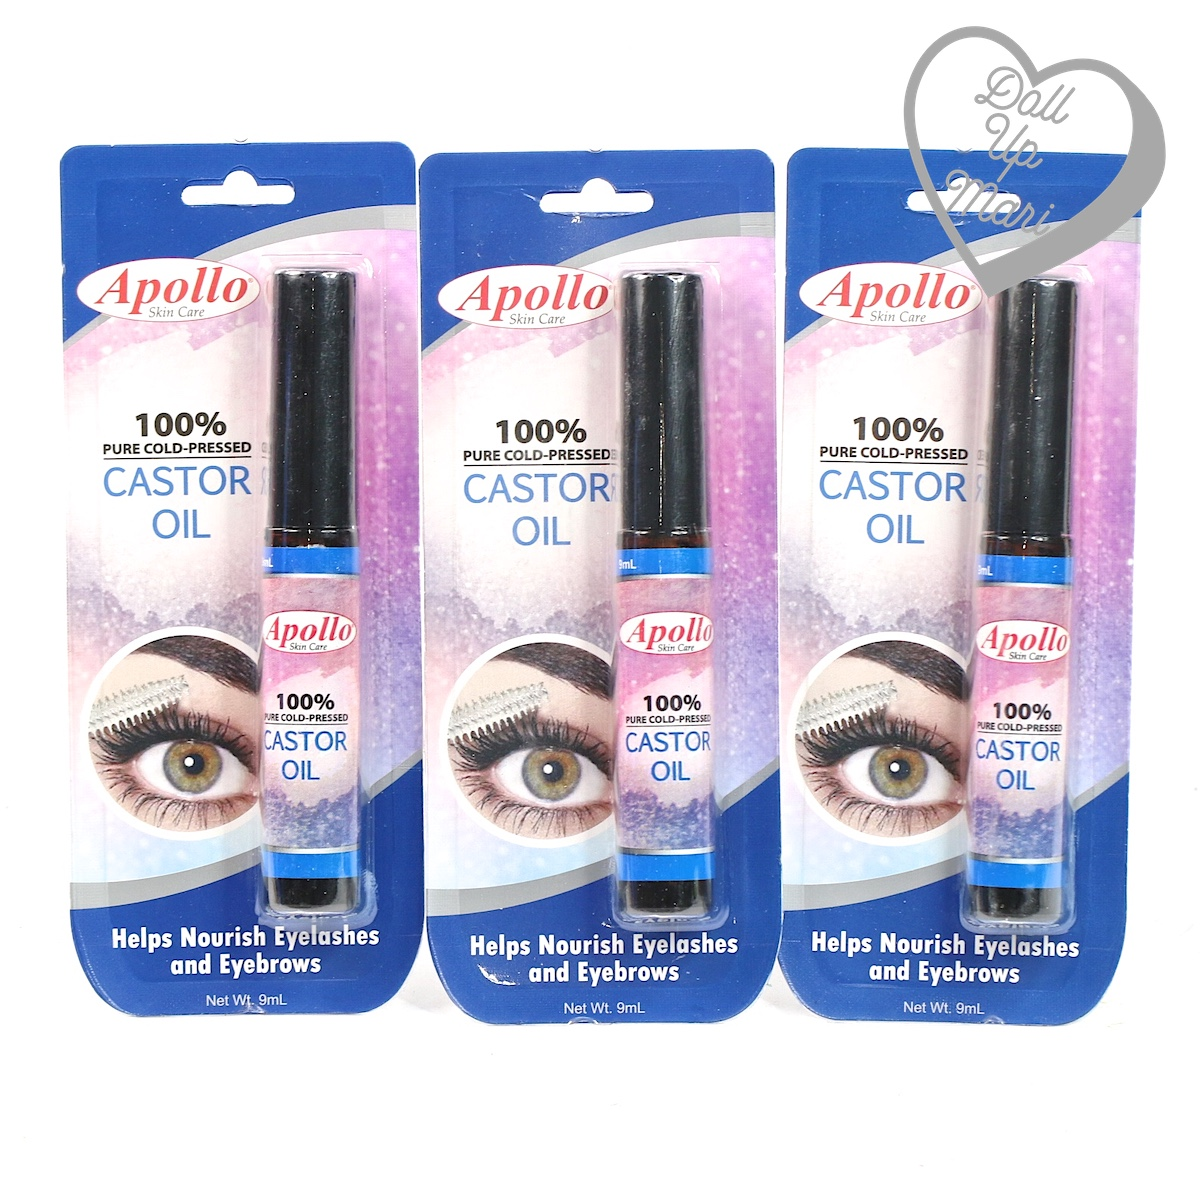 Apollo Castor Oil Now In Mascara Tubes!!!